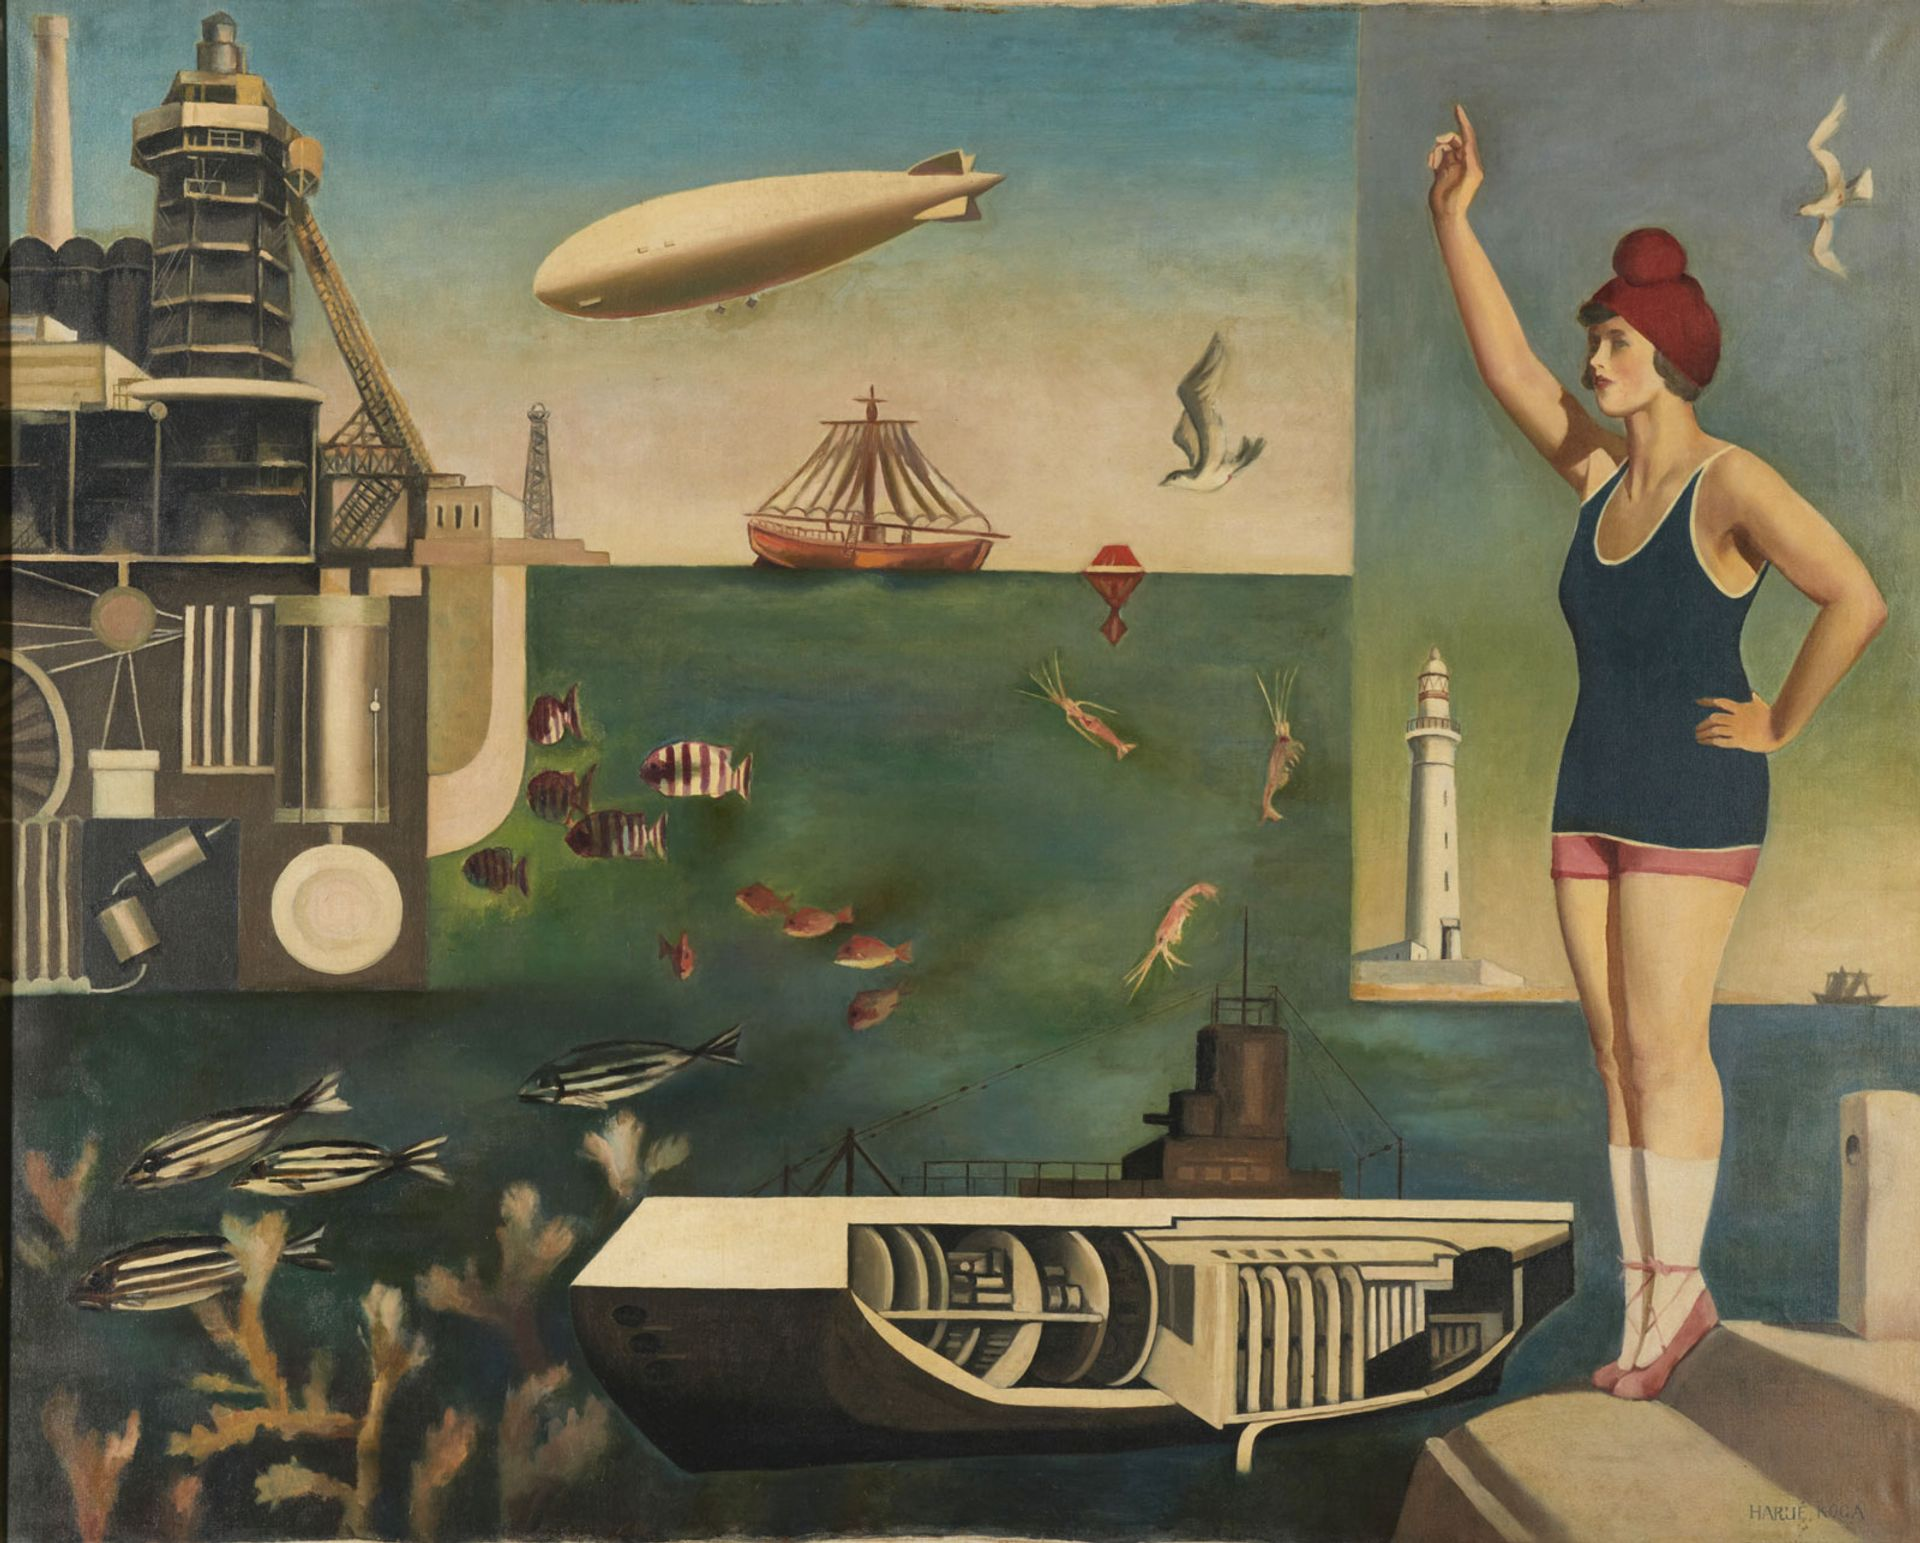 Koga Harue's Umi (The Sea) (1929) will be on show in Tate Modern's exhibition Surrealism Beyond Borders The National Museum of Modern Art, Tokyo. Photo: MOMAT/DNPartcom